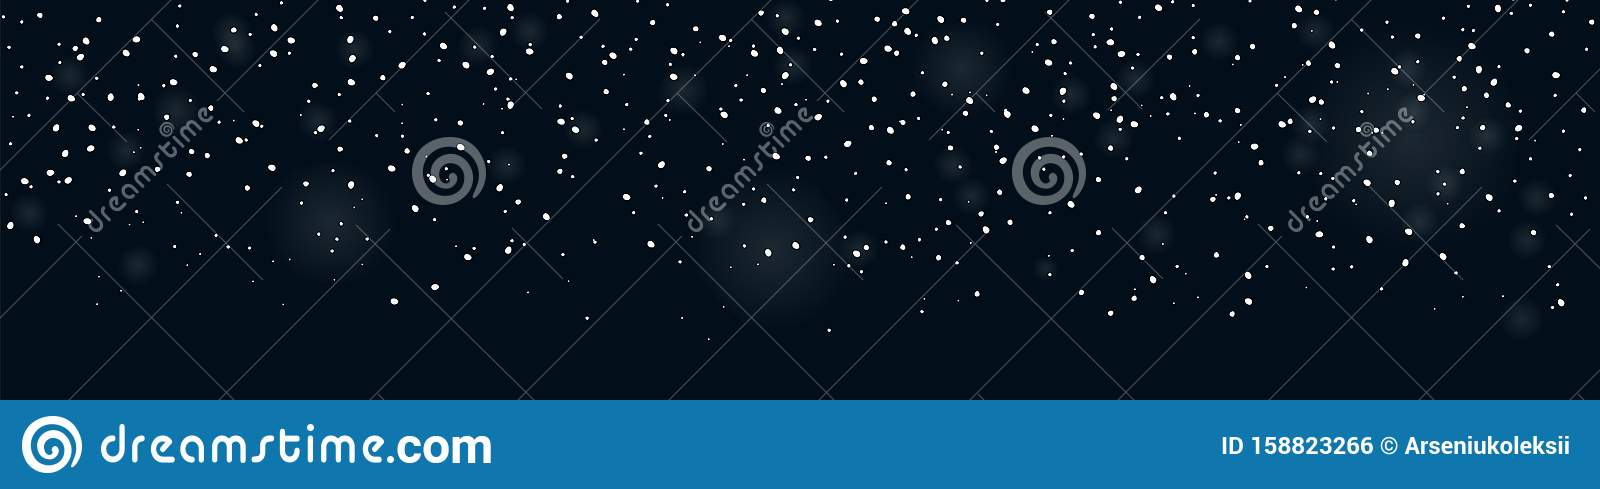 Falling snow seamless banner for winter decorations